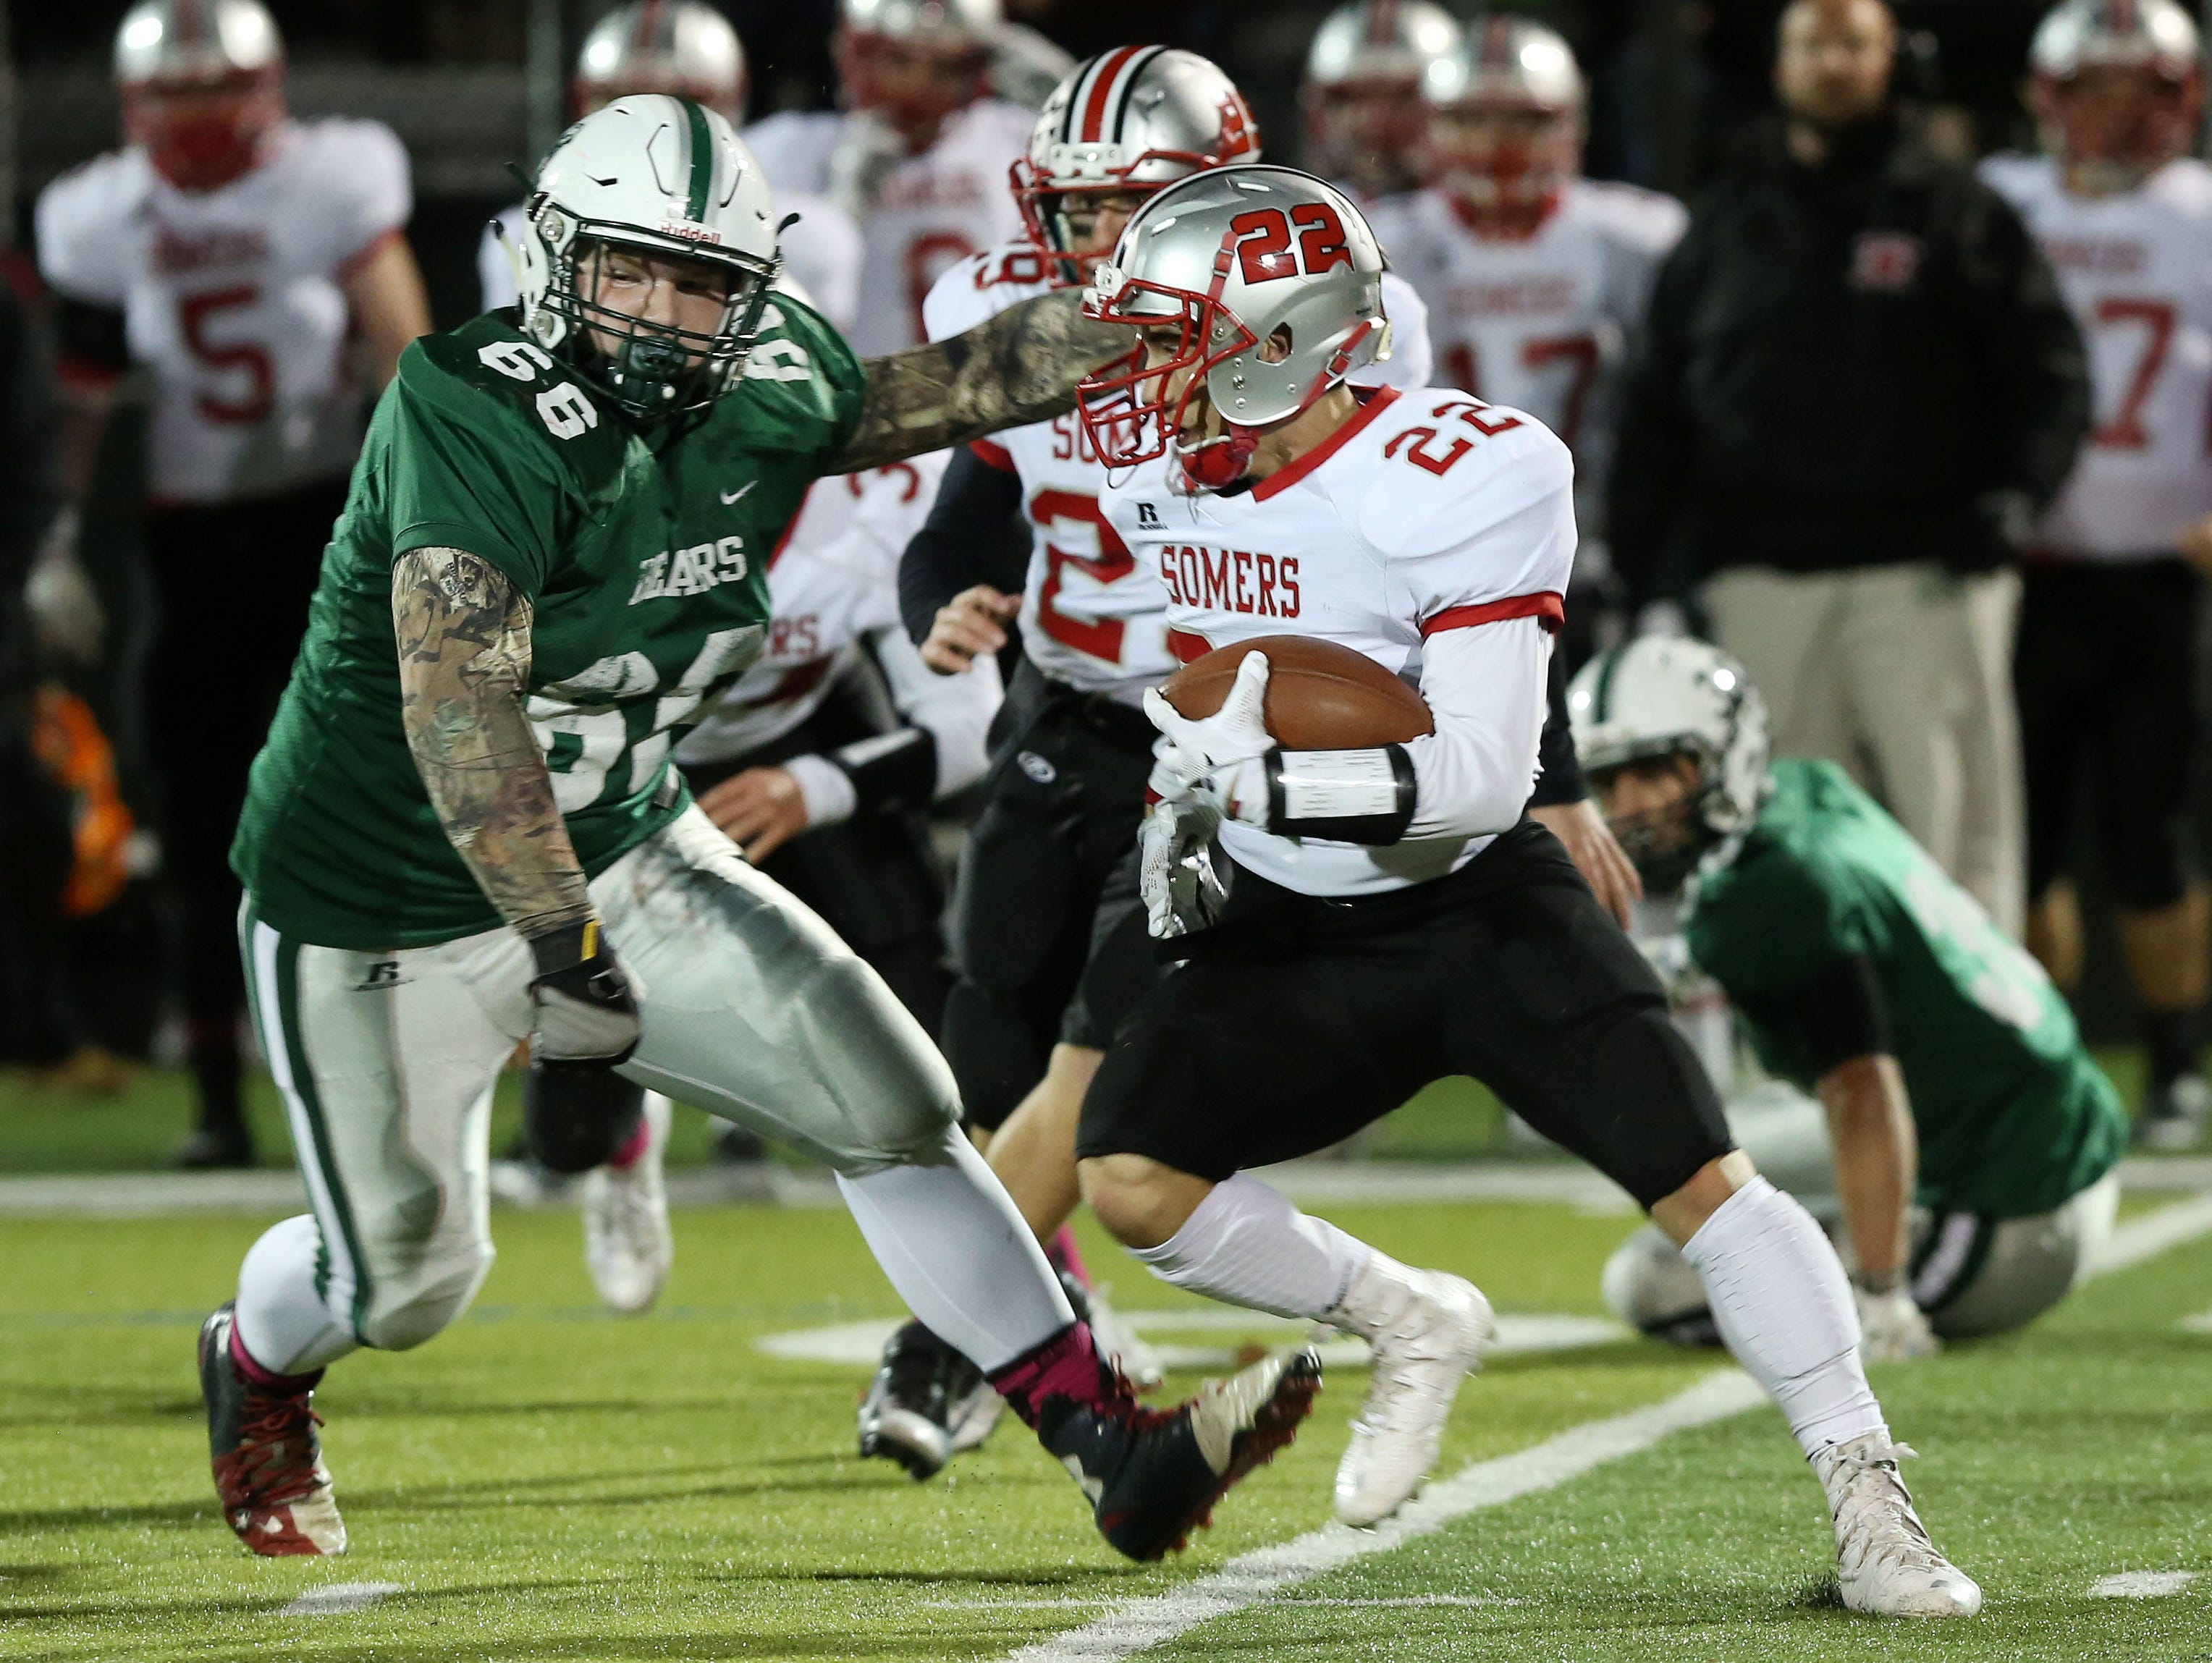 Somers' Vincent DiFilippo (22) tries to get away from Brewster's Nicholas Leahy (66) after recovering a first half fumble during the Section 1 Class A semifinals at Brewster High School Oct. 28, 2016.